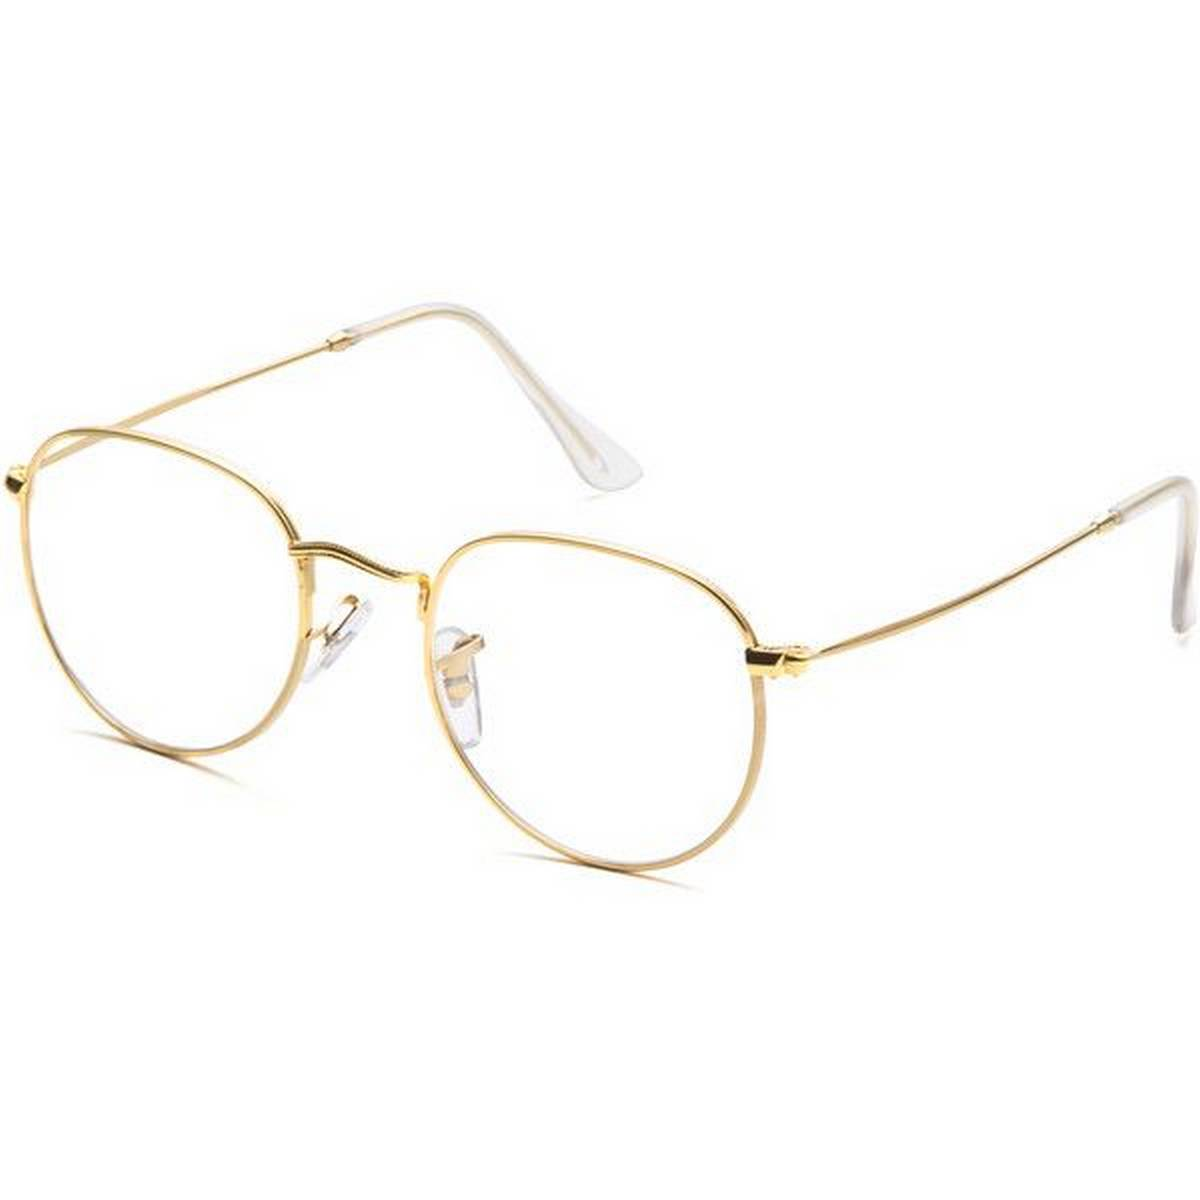 American Style Round Golden frame Transparent Glasses For Men And Women